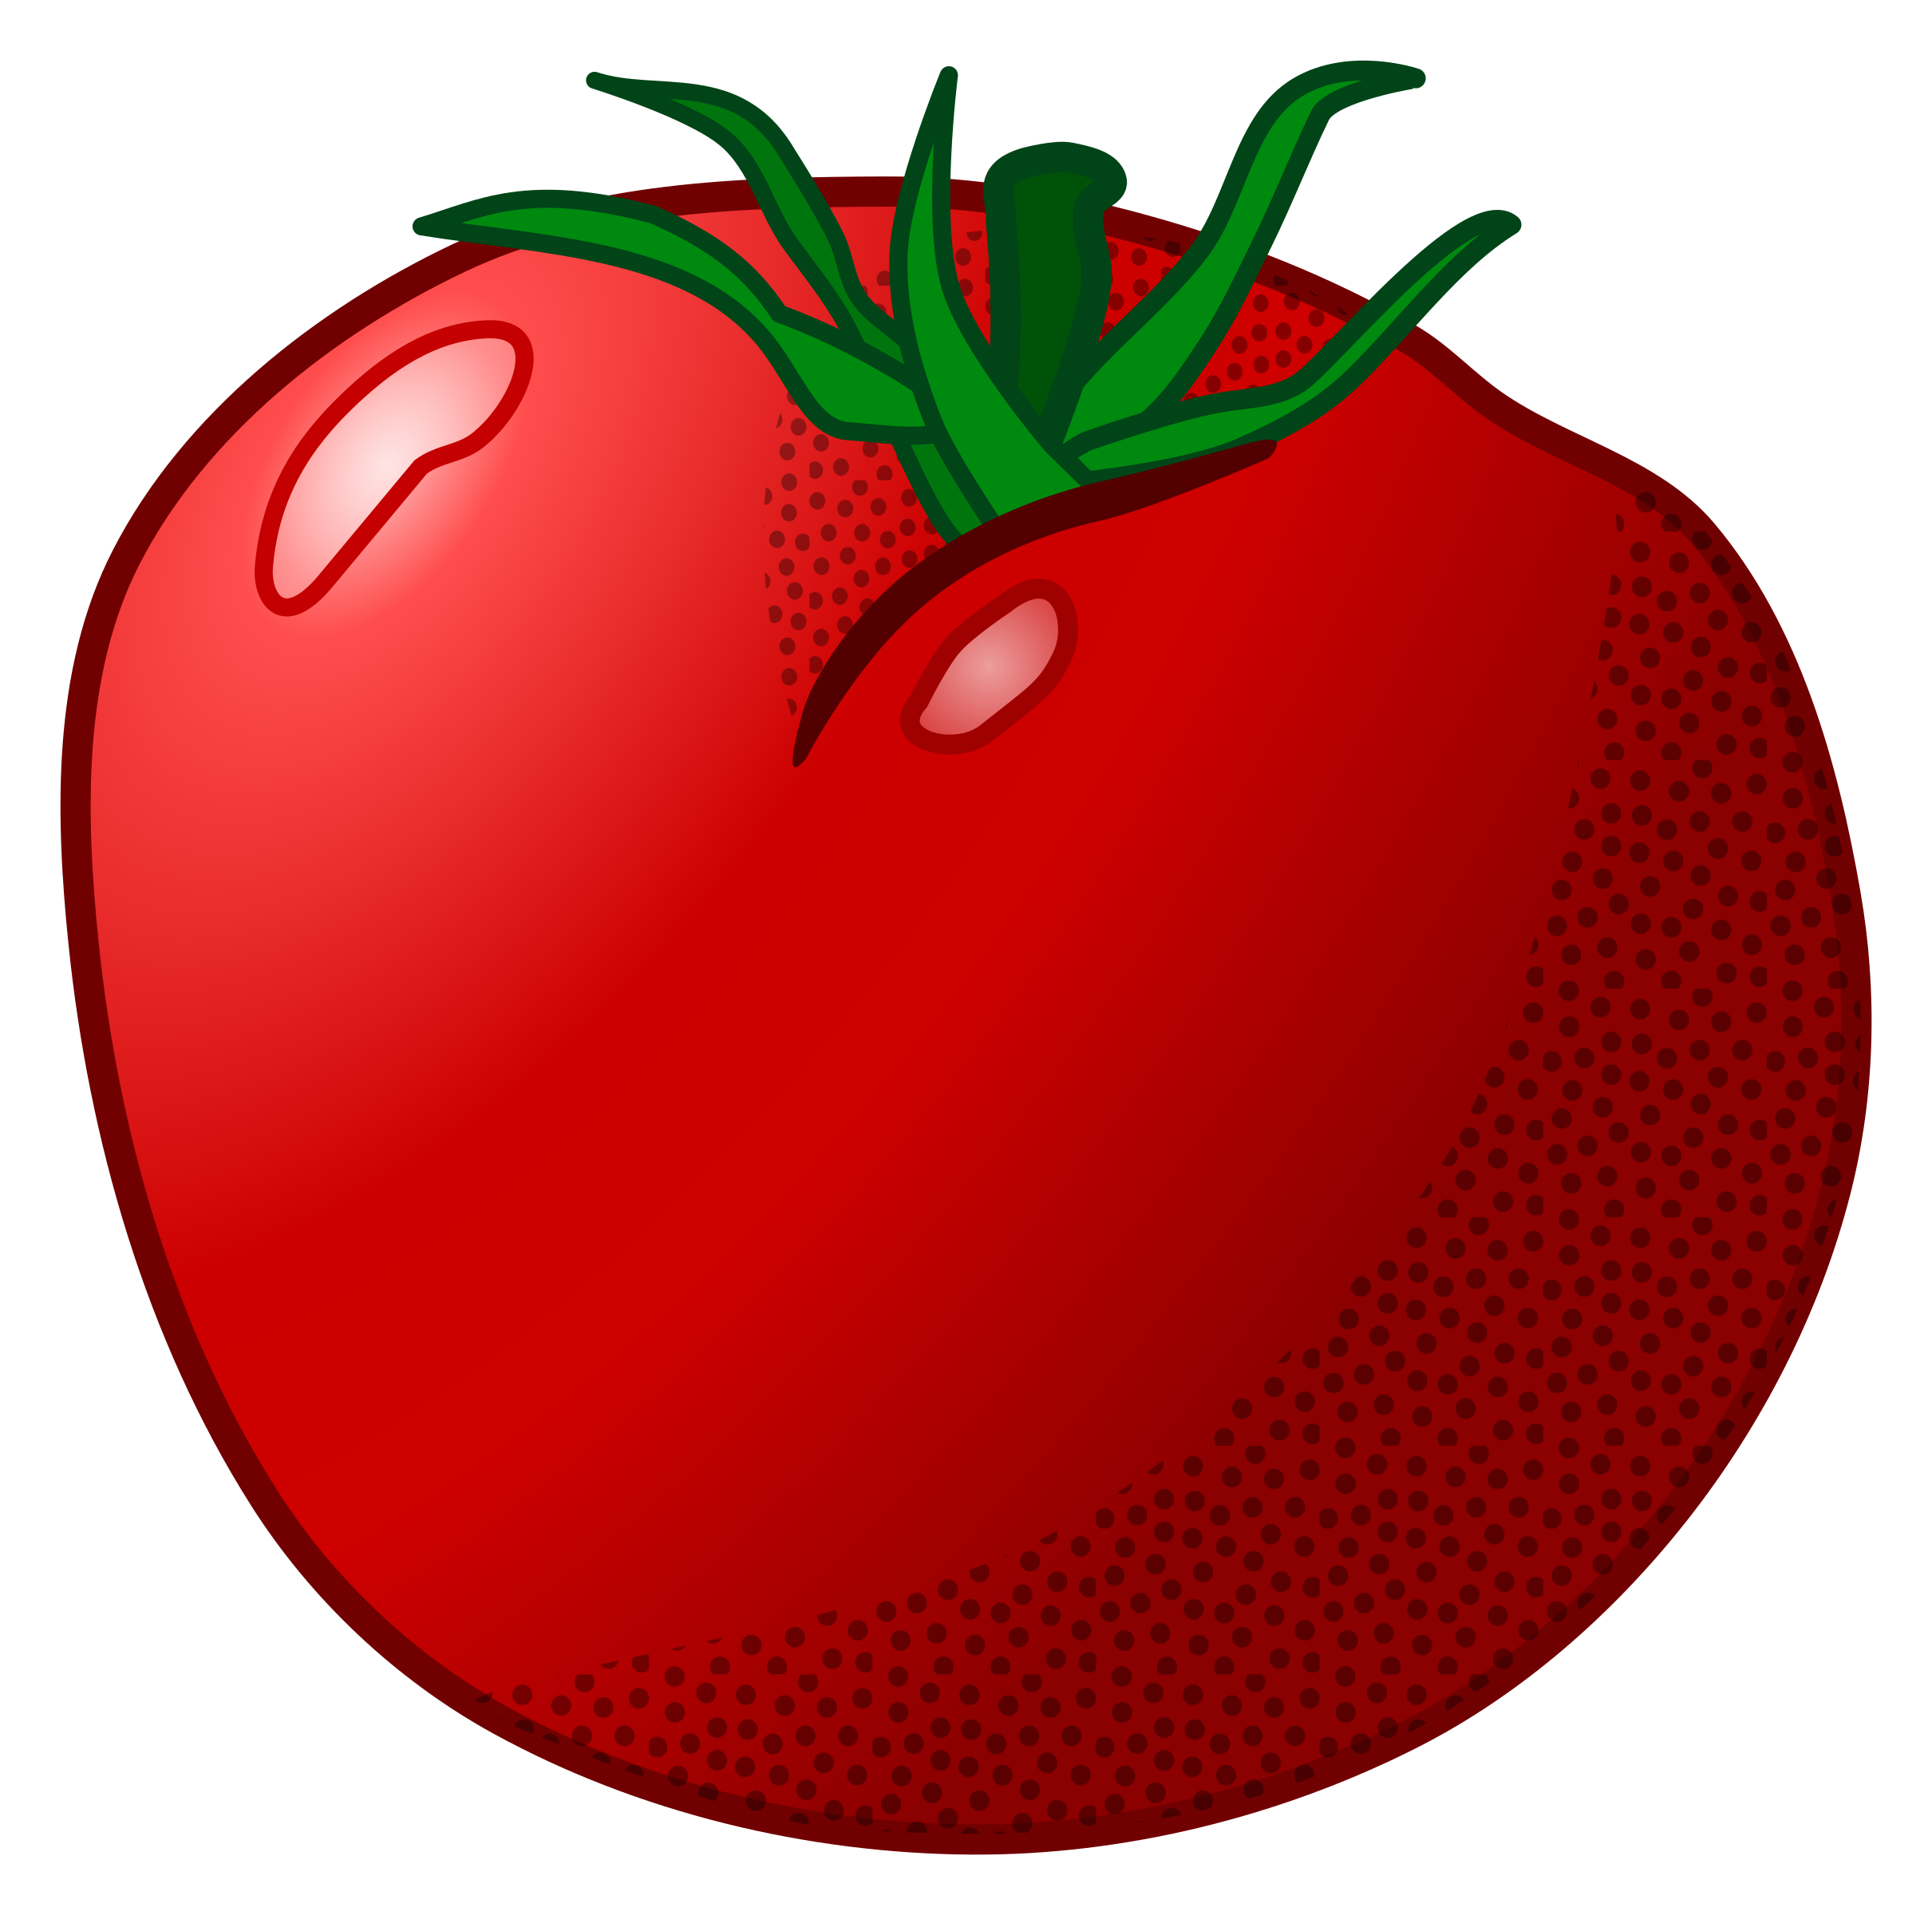 banner transparent library Clip art free panda. Tomatoes clipart